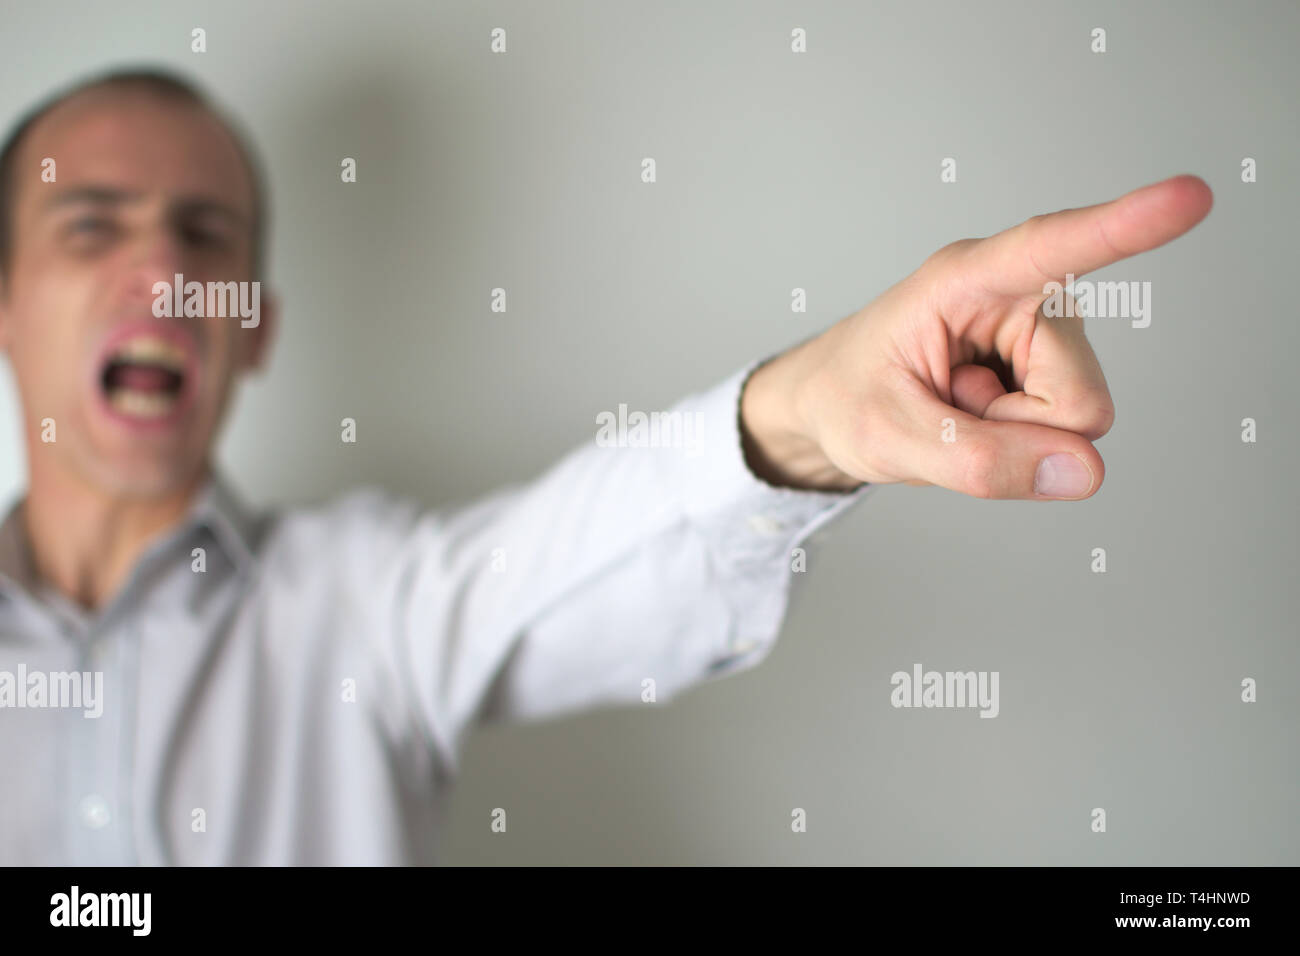 An angry man pointing away, as if firing someone. - Stock Image